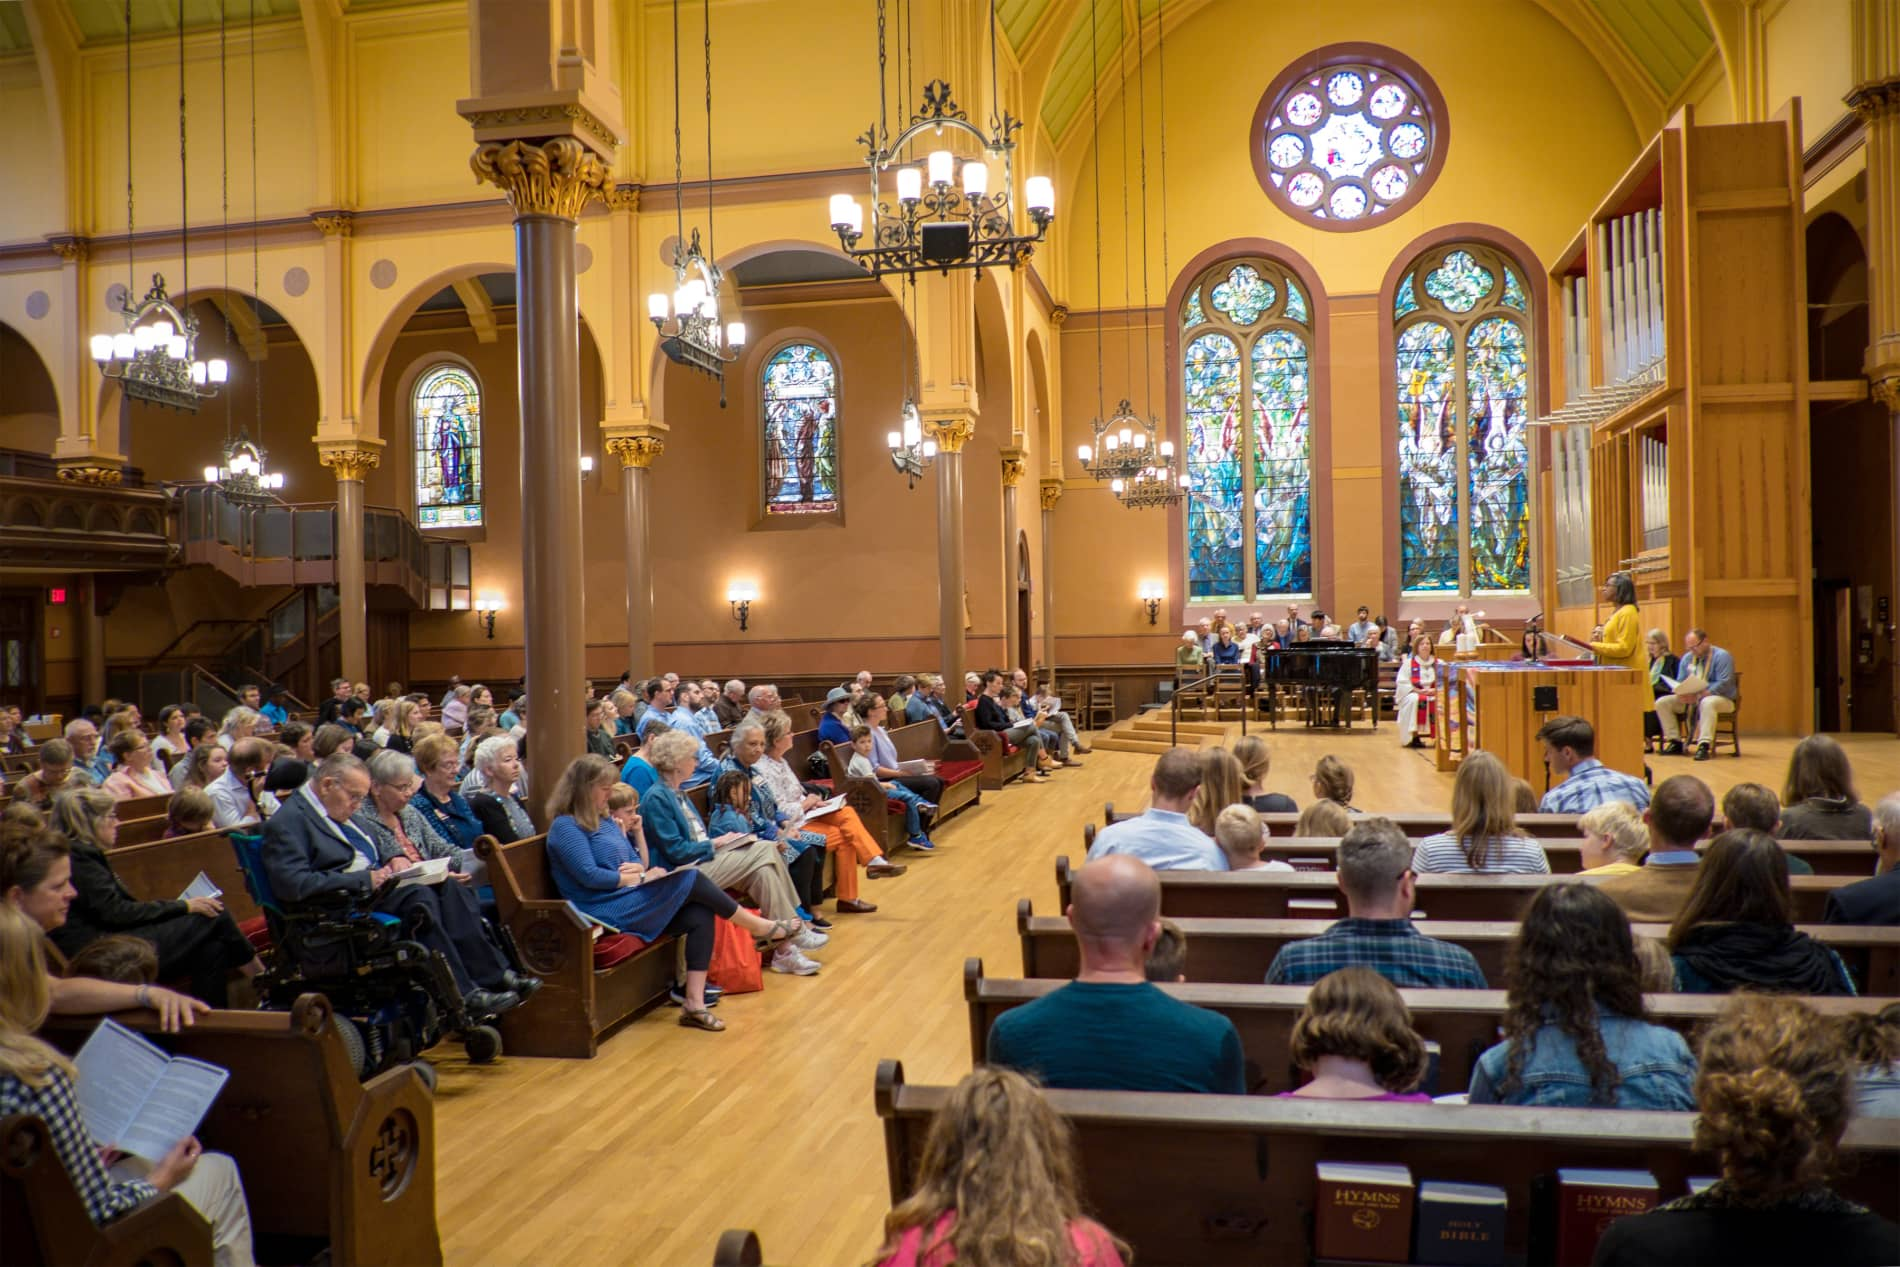 The sanctuary of First Church Cambridge filled with Sunday worshippers